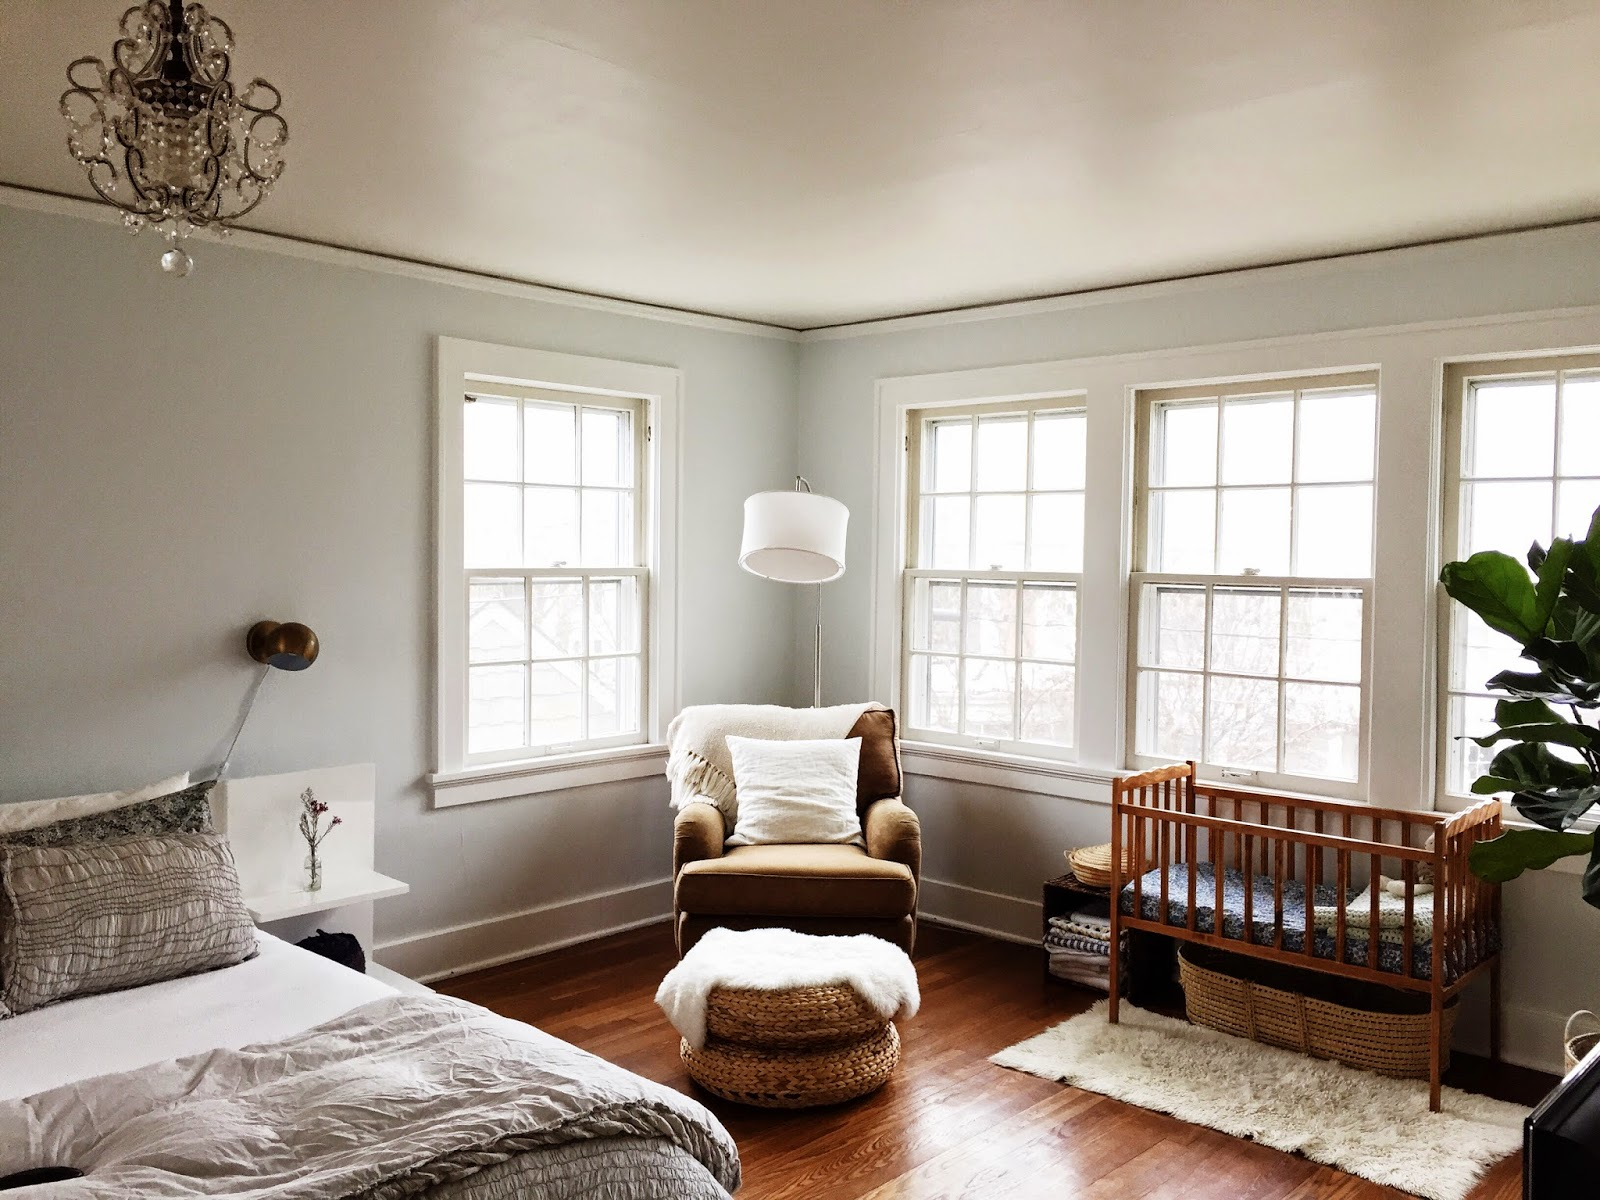 Homestead shared nursery master bedroom tour it 39 s for Master bedroom with attached nursery